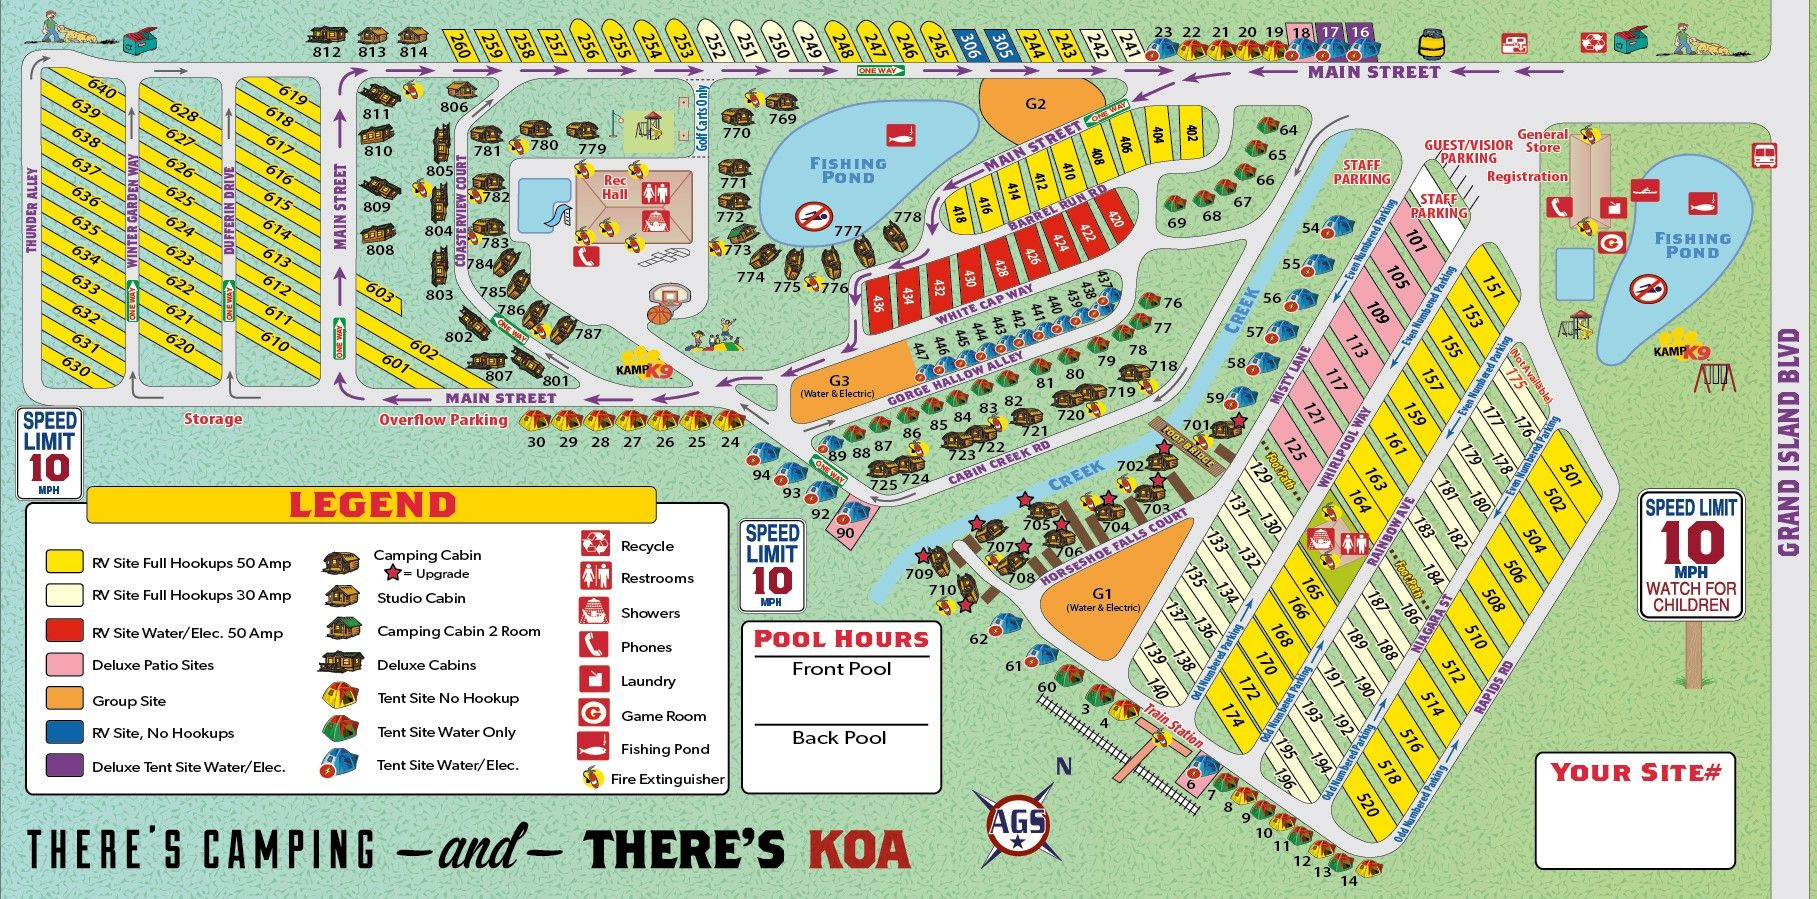 Koa Campgrounds Usa Map on scott louisiana map, koa oklahoma map, manchester california map, tower park koa map, scott koa campground map, petaluma koa map, koa camping map of georgia, koa arizona map, koa in usa,